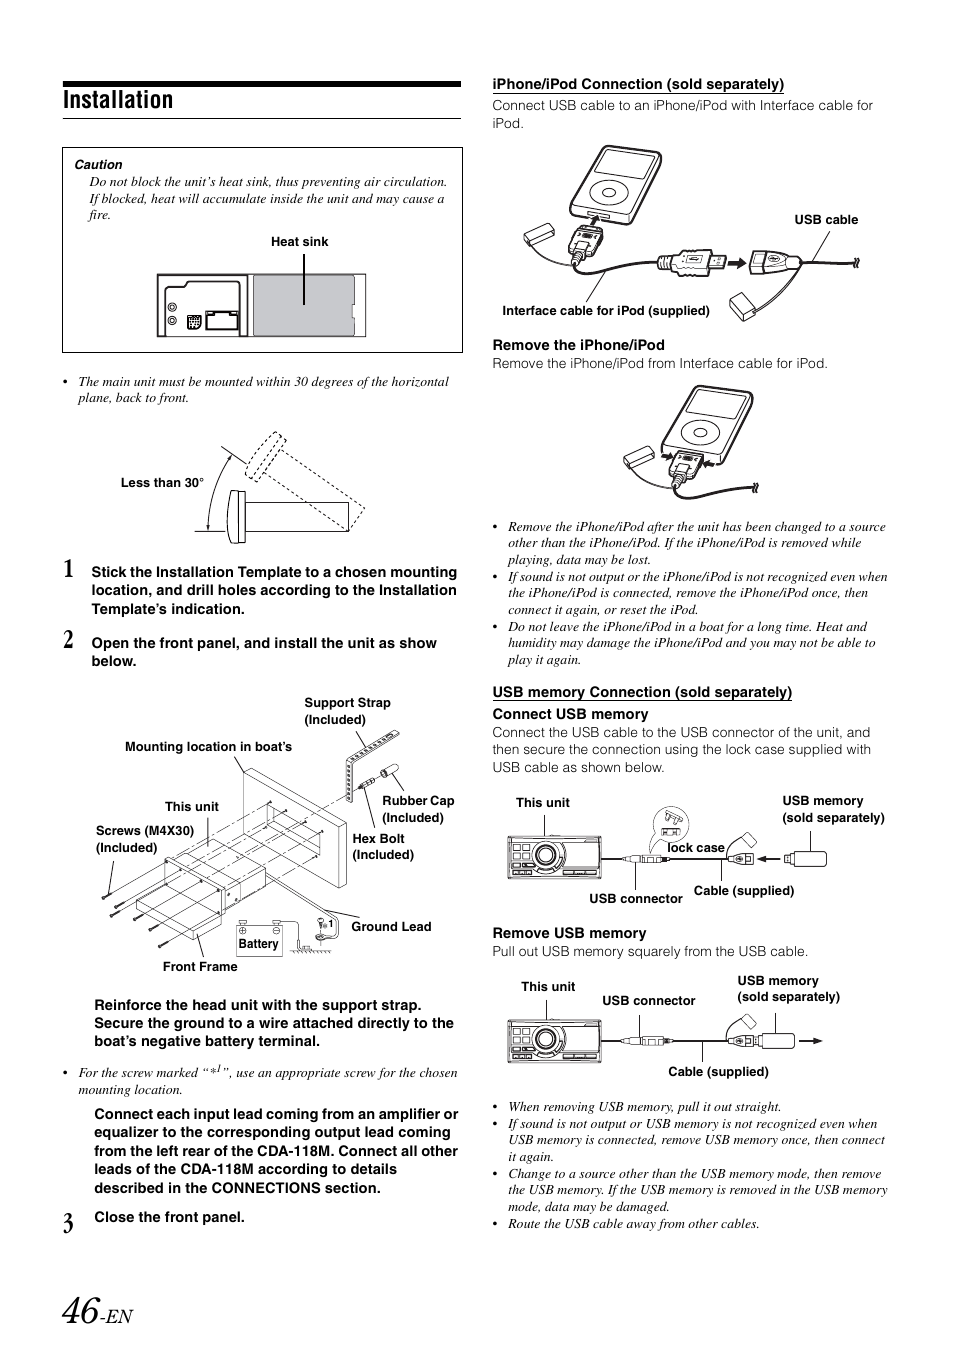 Installation Alpine Cda 118m User Manual Page 48 51 Equalizer Wiring Diagram